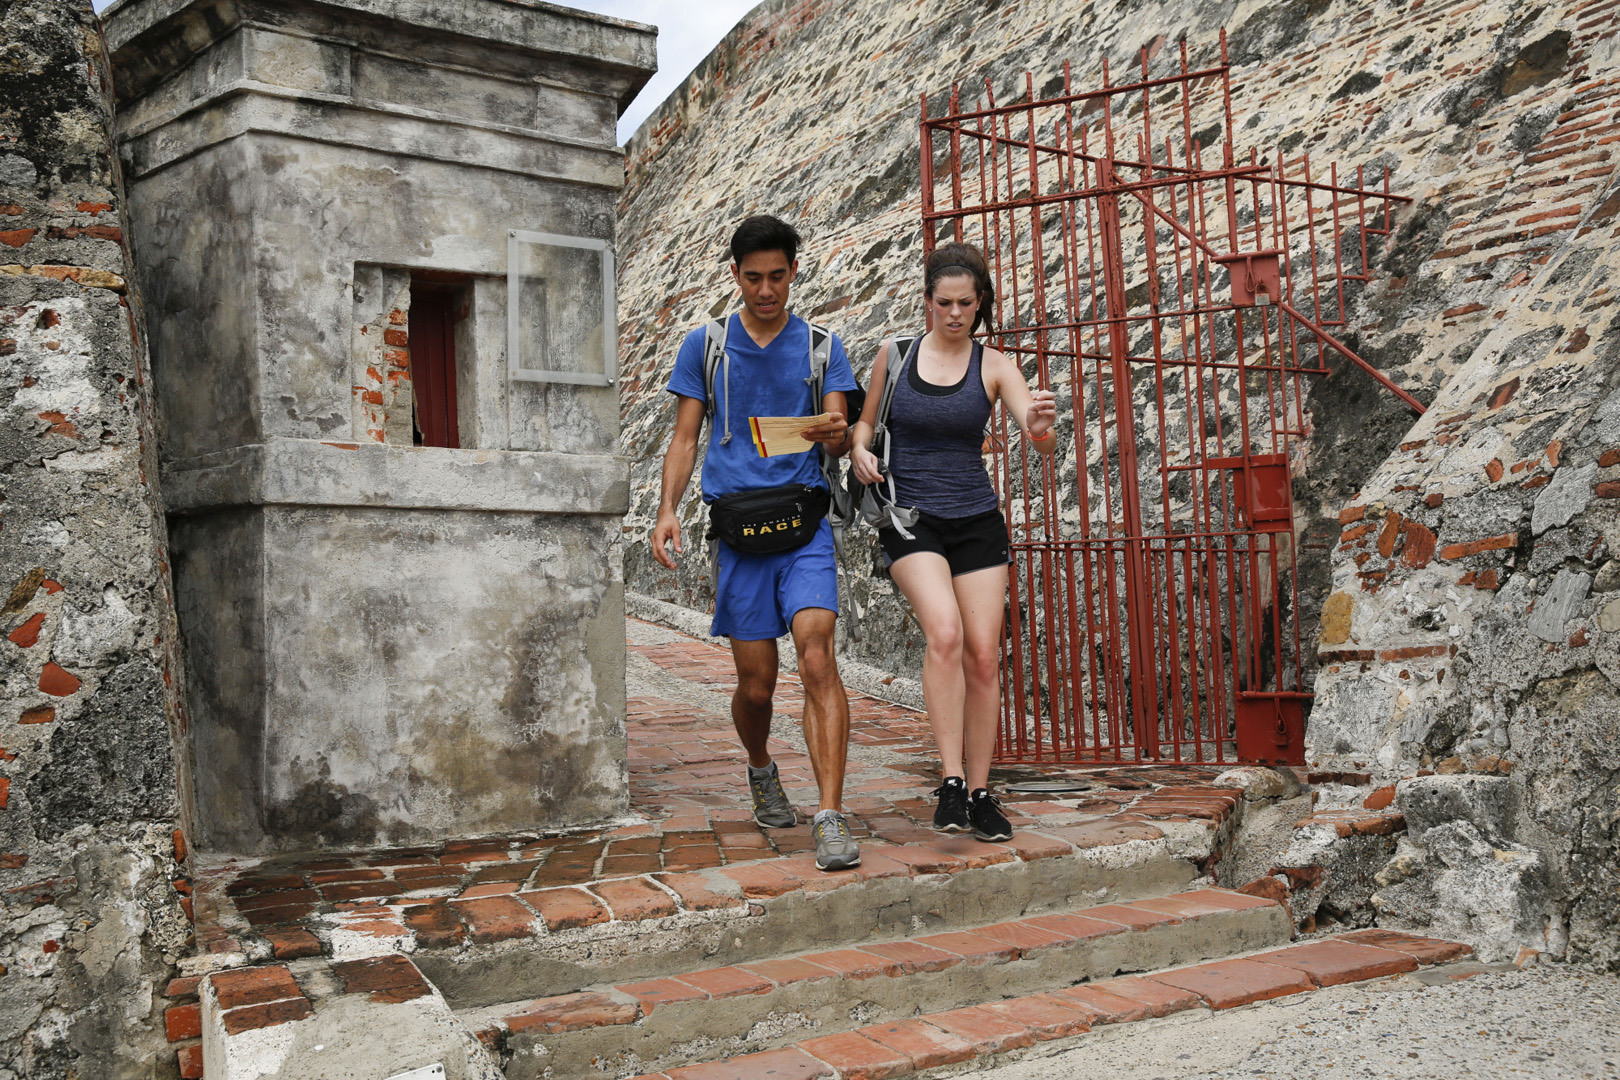 Zach and Rachel keep up the pace during the latest leg of The Amazing Race.